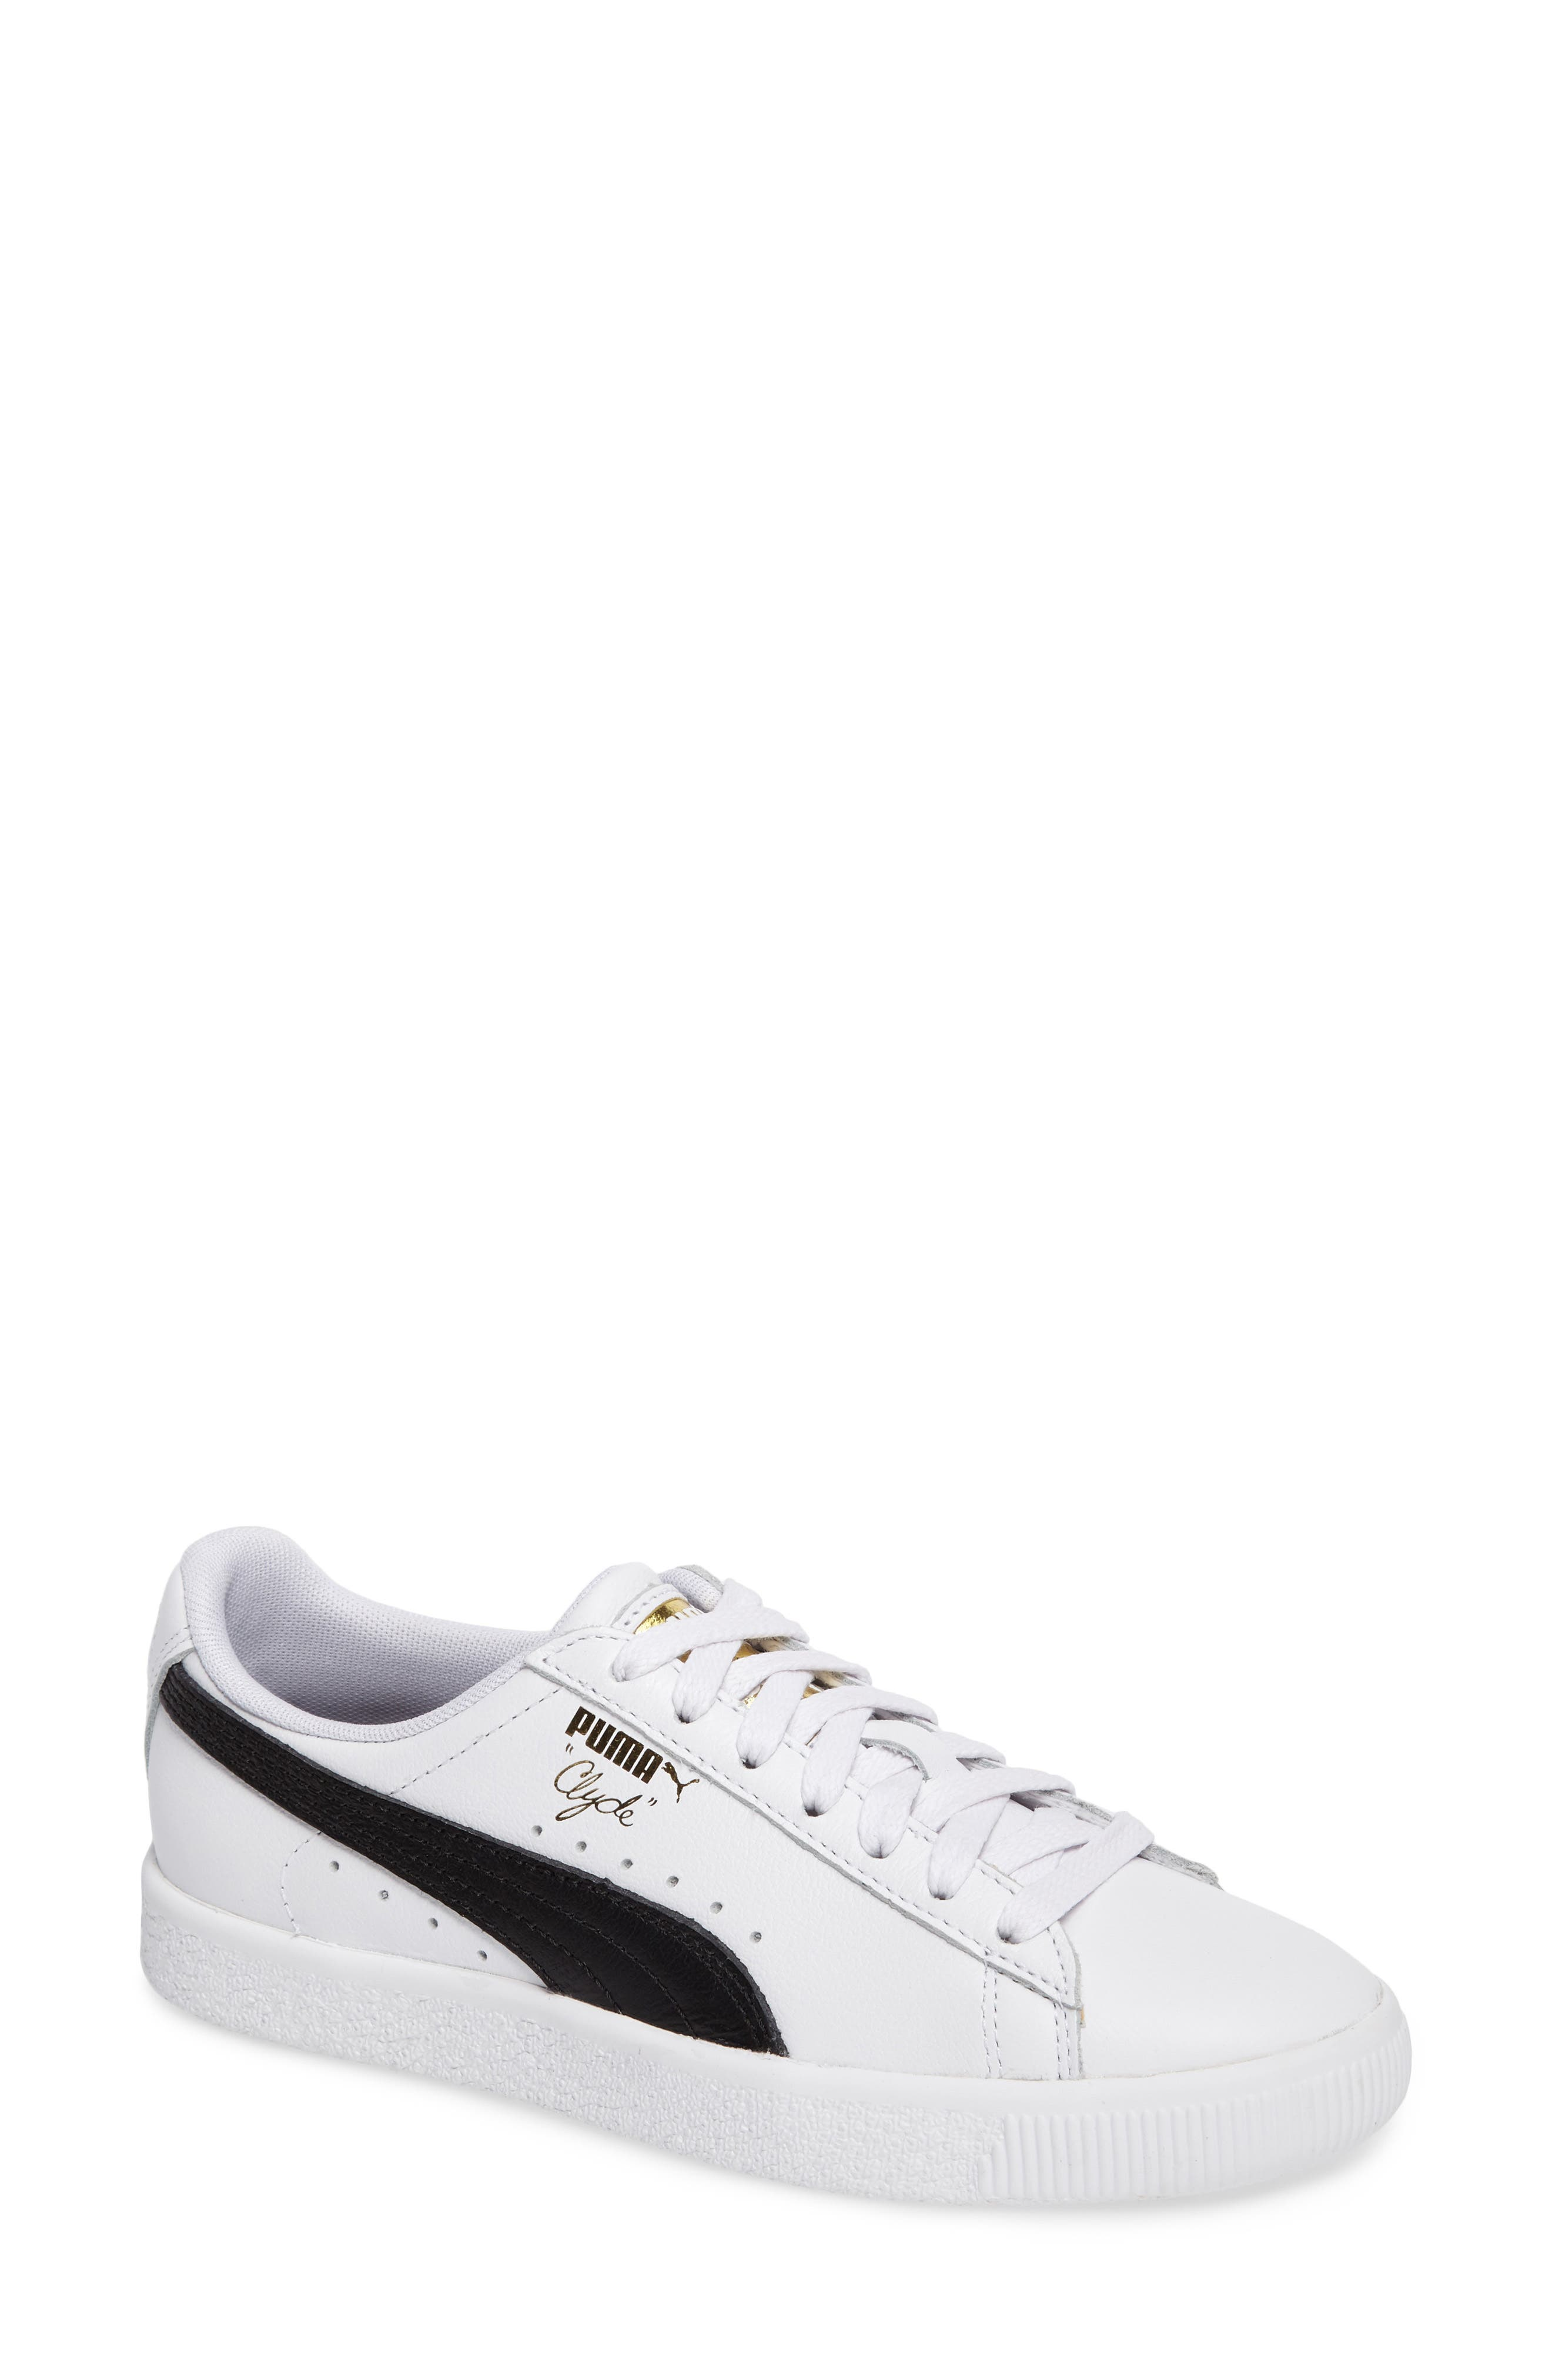 Clyde Sneaker,                         Main,                         color, WHITE/ BLACK/ GOLD